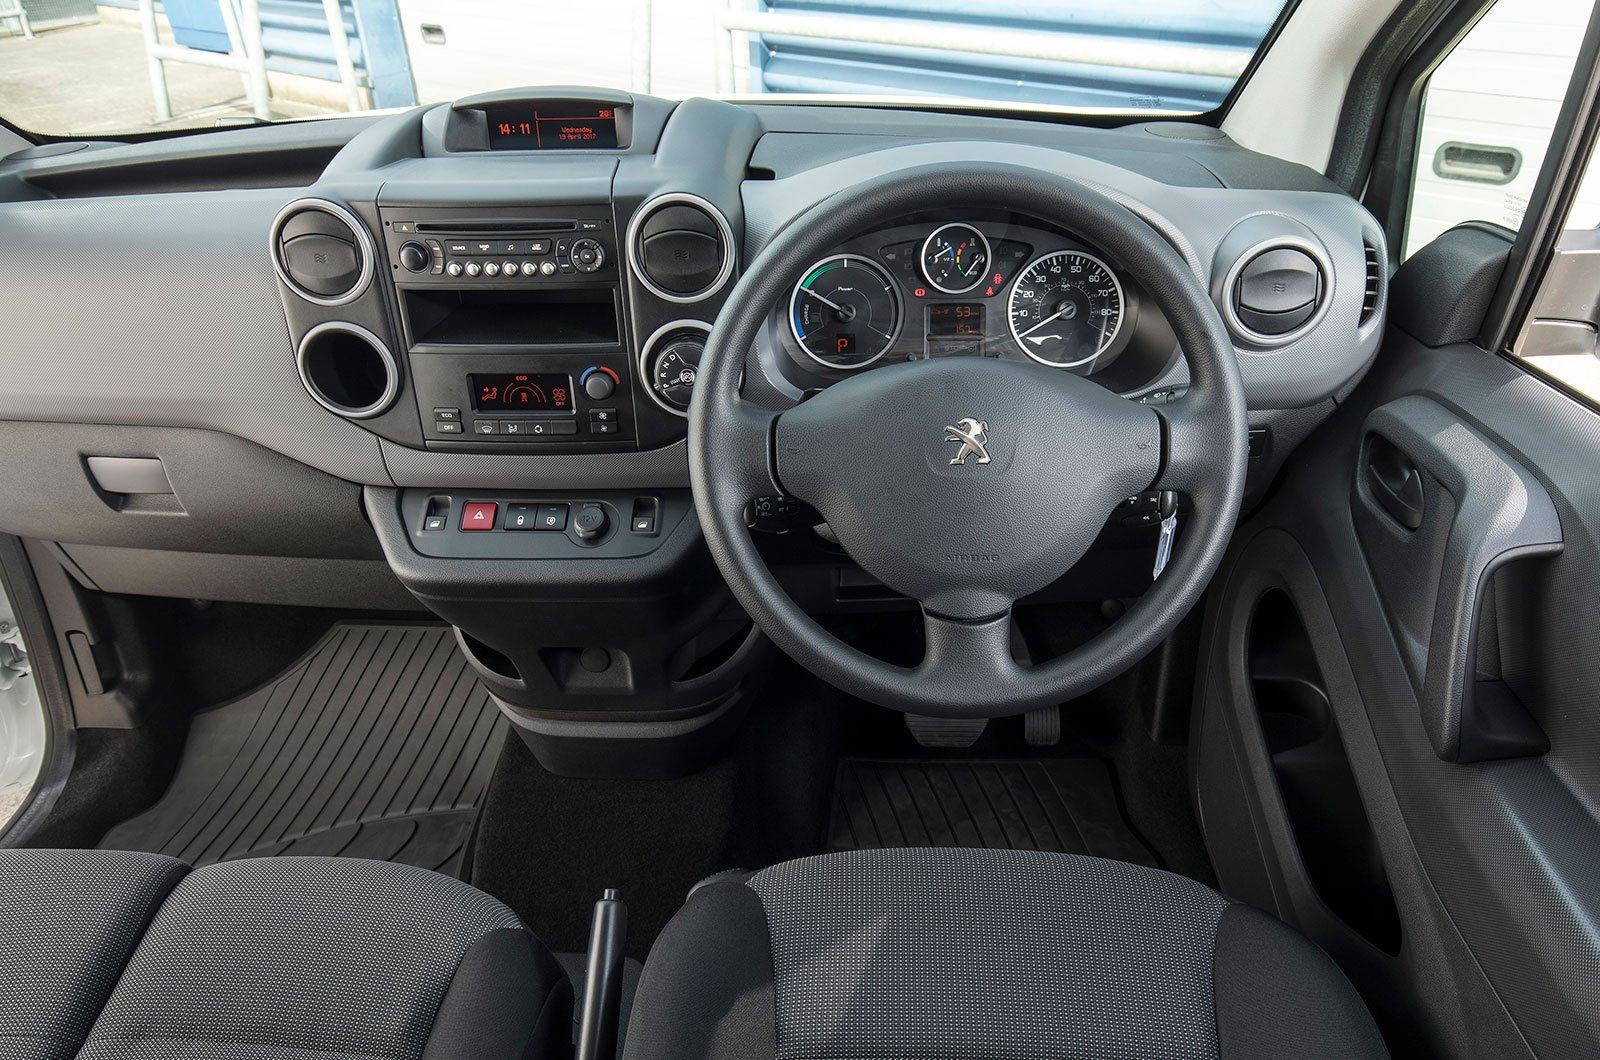 Peugeot Partner Electric interior